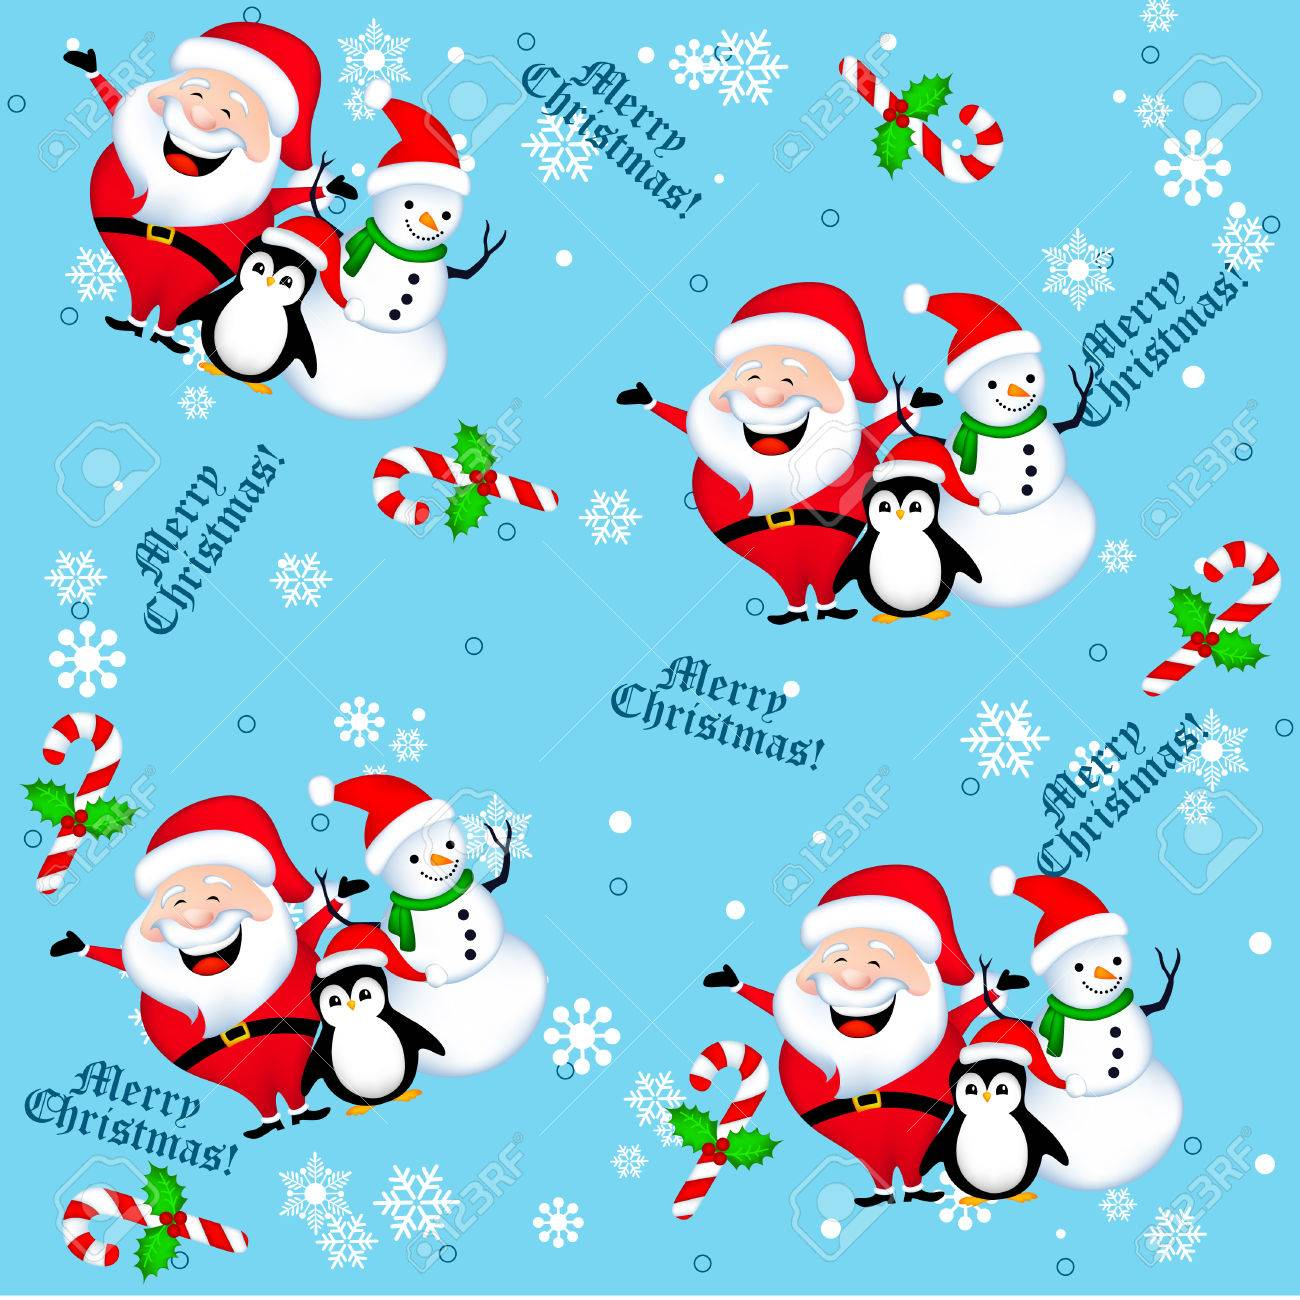 Seamless Background With Santa Snowman Penguin Christmas Tree Royalty Free Cliparts Vectors And Stock Illustration Image 67296692